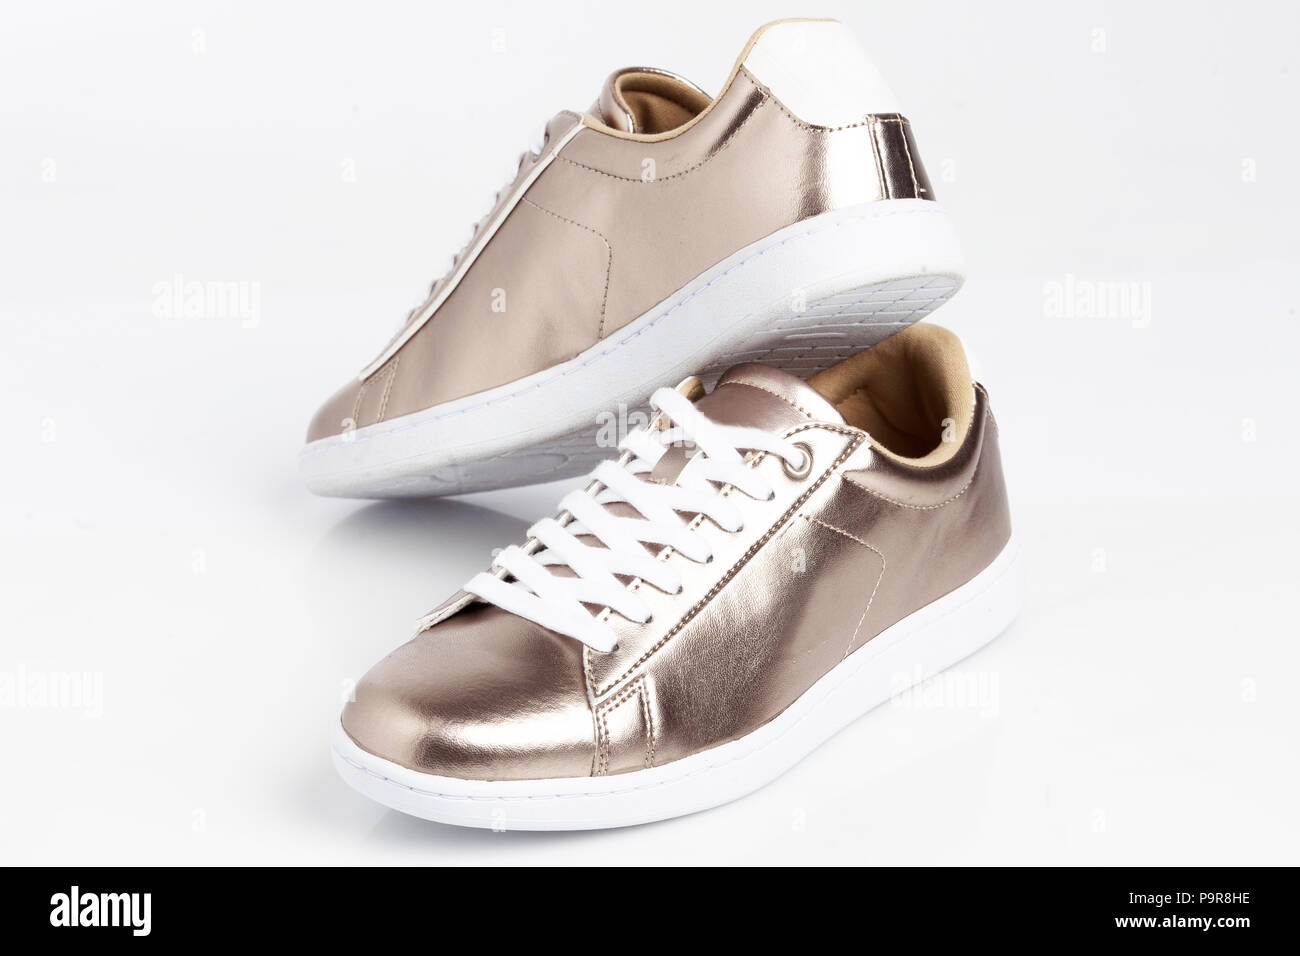 ef5e0e3dca11 Silver Shoe Stock Photos   Silver Shoe Stock Images - Alamy